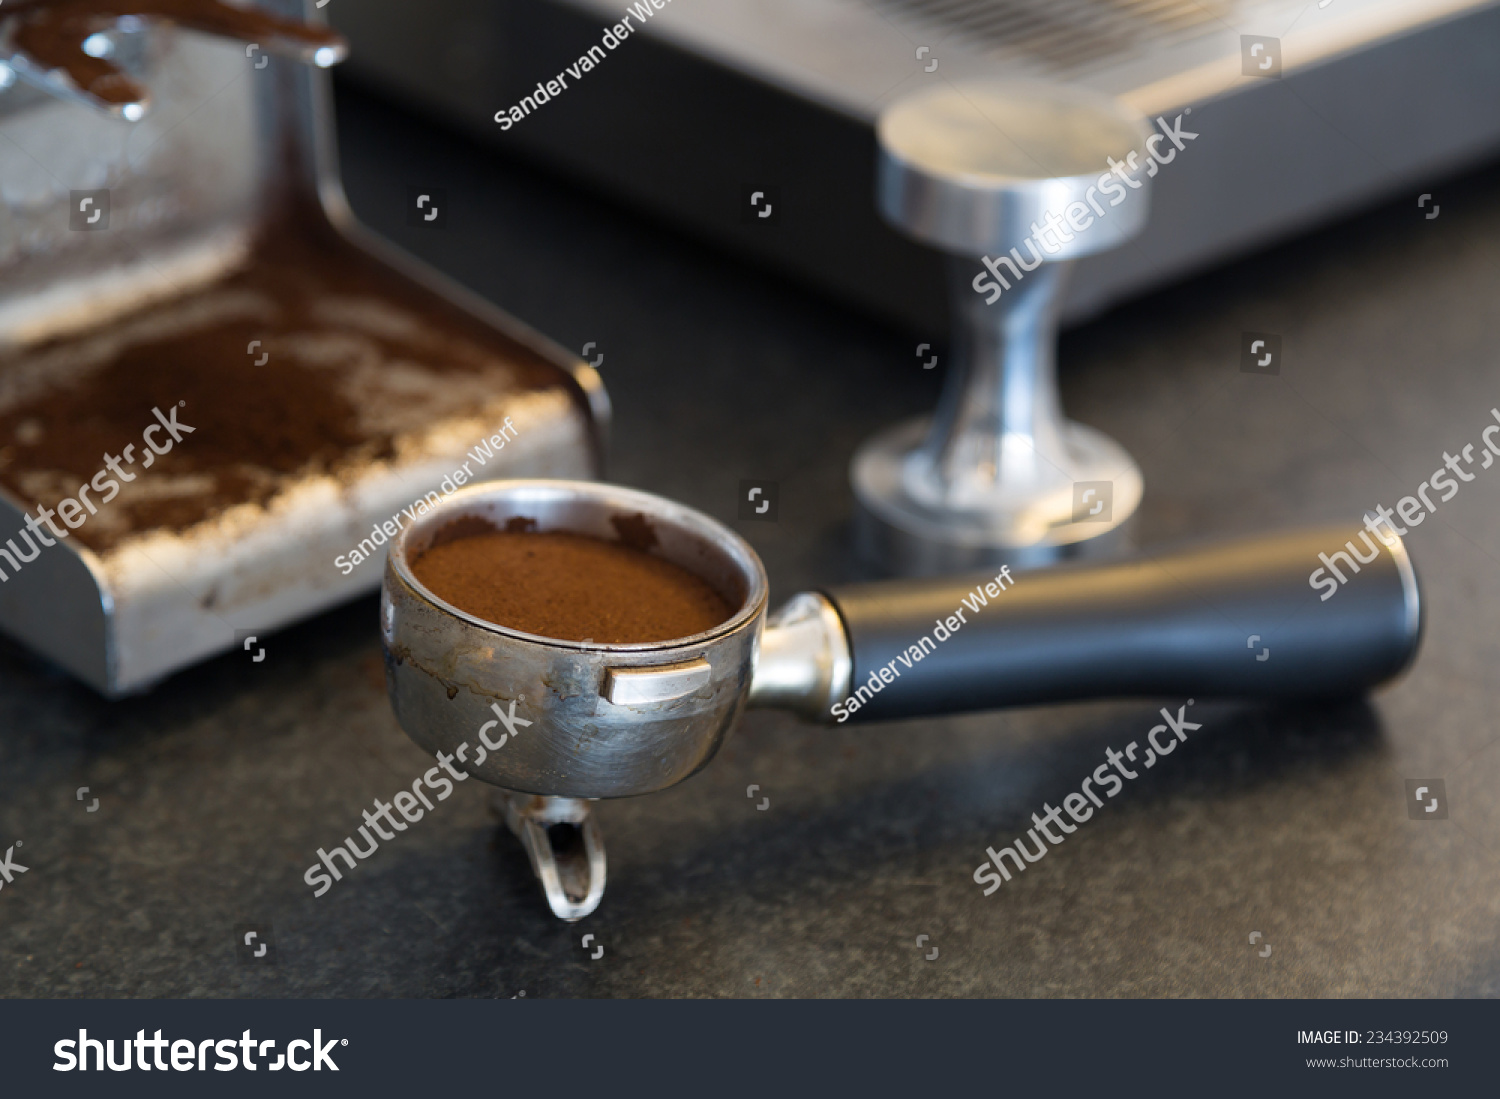 espresso bayonet called piston portafilter tamper stock photo 234392509 shutterstock. Black Bedroom Furniture Sets. Home Design Ideas